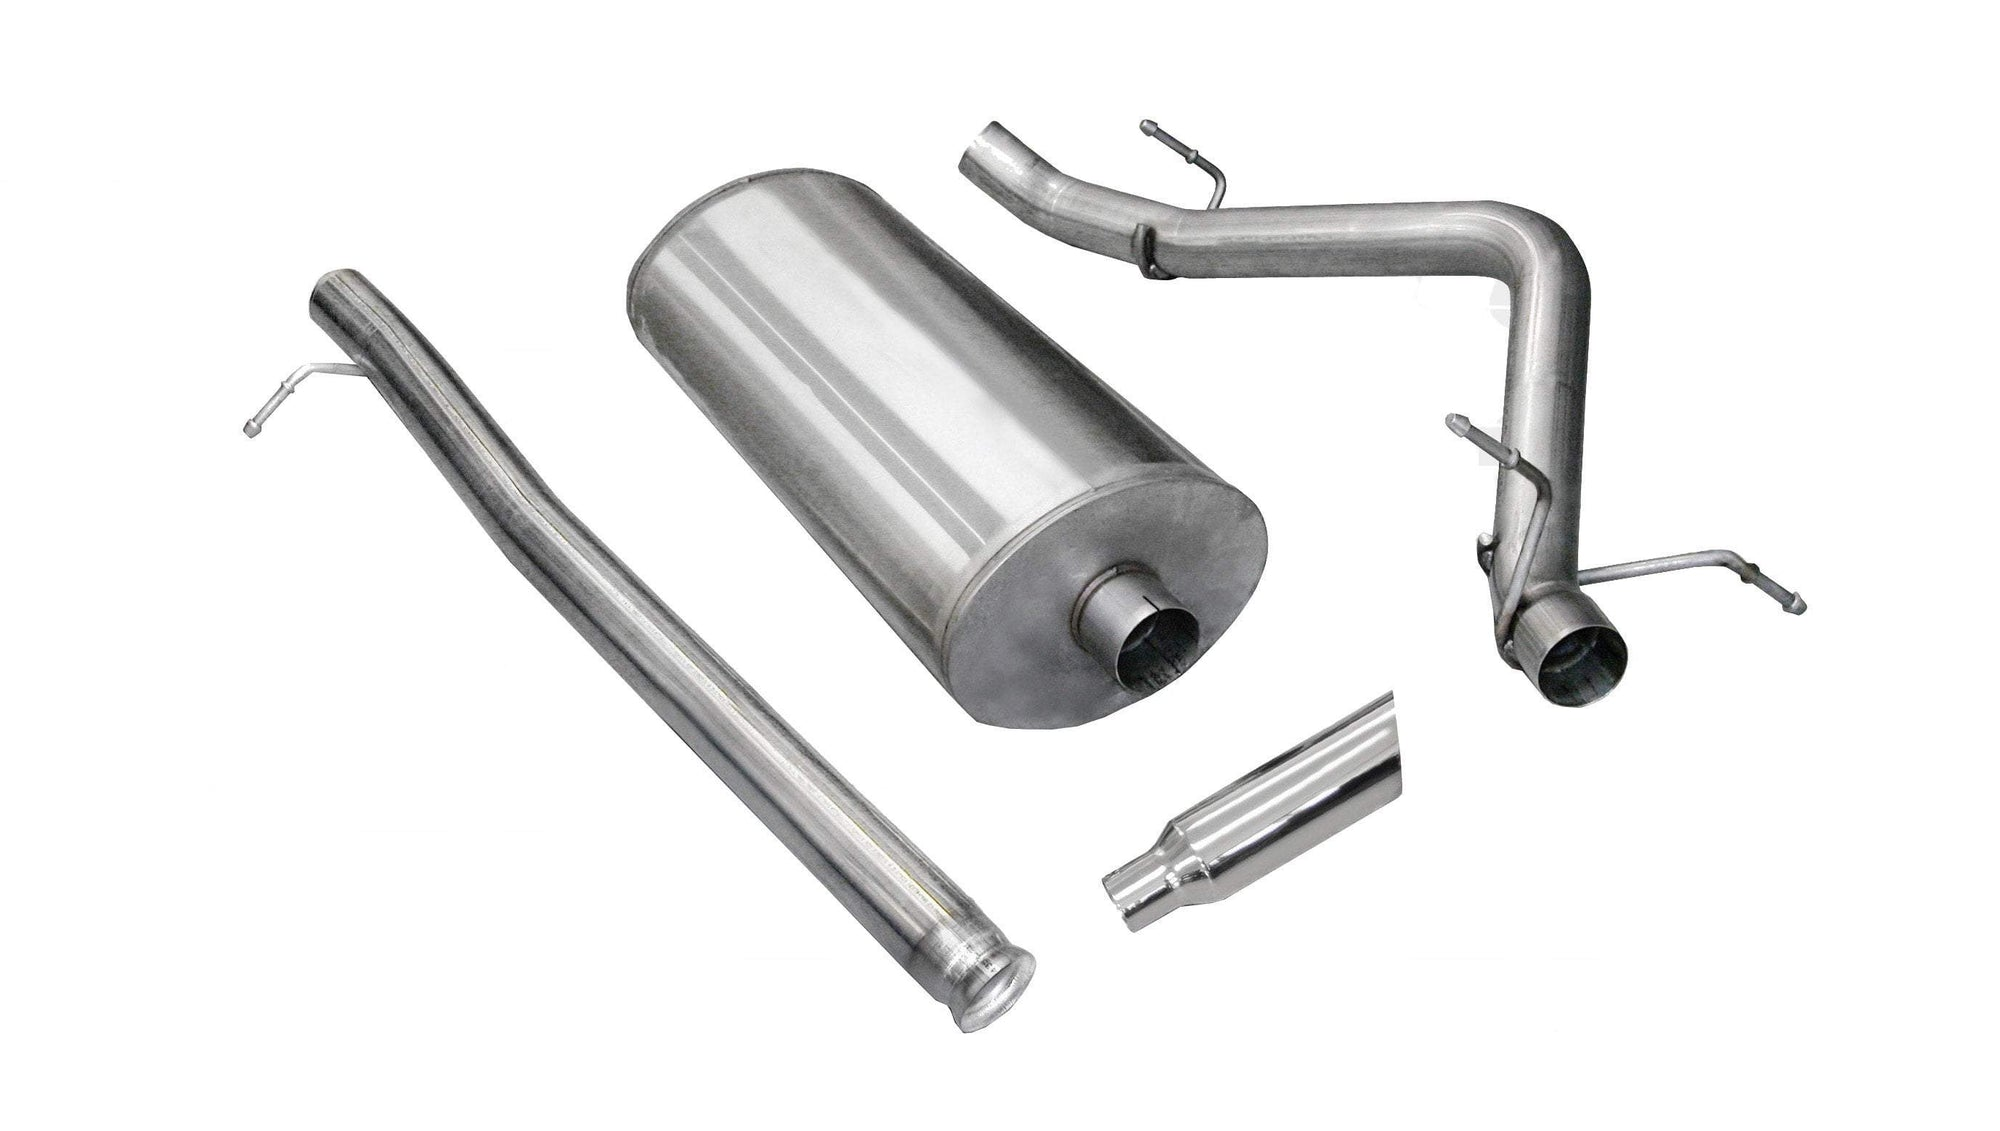 "dB Cat-Back Exhaust Polished / Sport / Single Side - Single 4in 2007-2009 Chevrolet Silverado, GMC Sierra, Denali, 6.2L V8, Crew Cab Short Bed, 3.0"" Single Side Exit Catback Exhaust System with 4.0"" Tip (24514) Sport Sound Level"